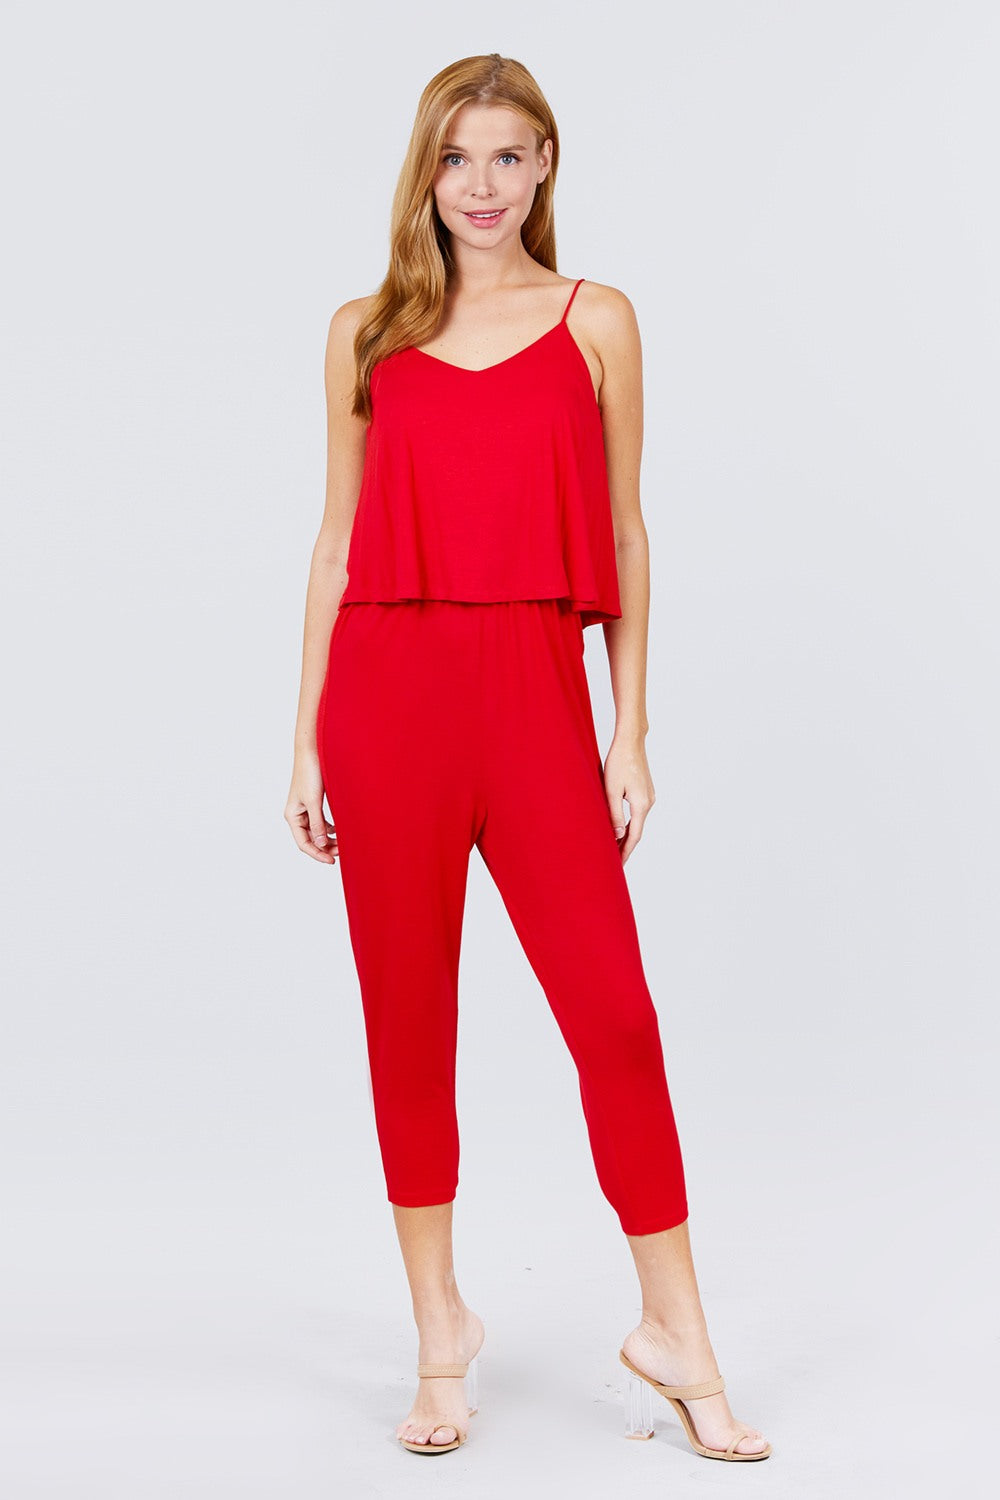 Cami Layered Top Capri Knit Jumpsuit - J NILLY